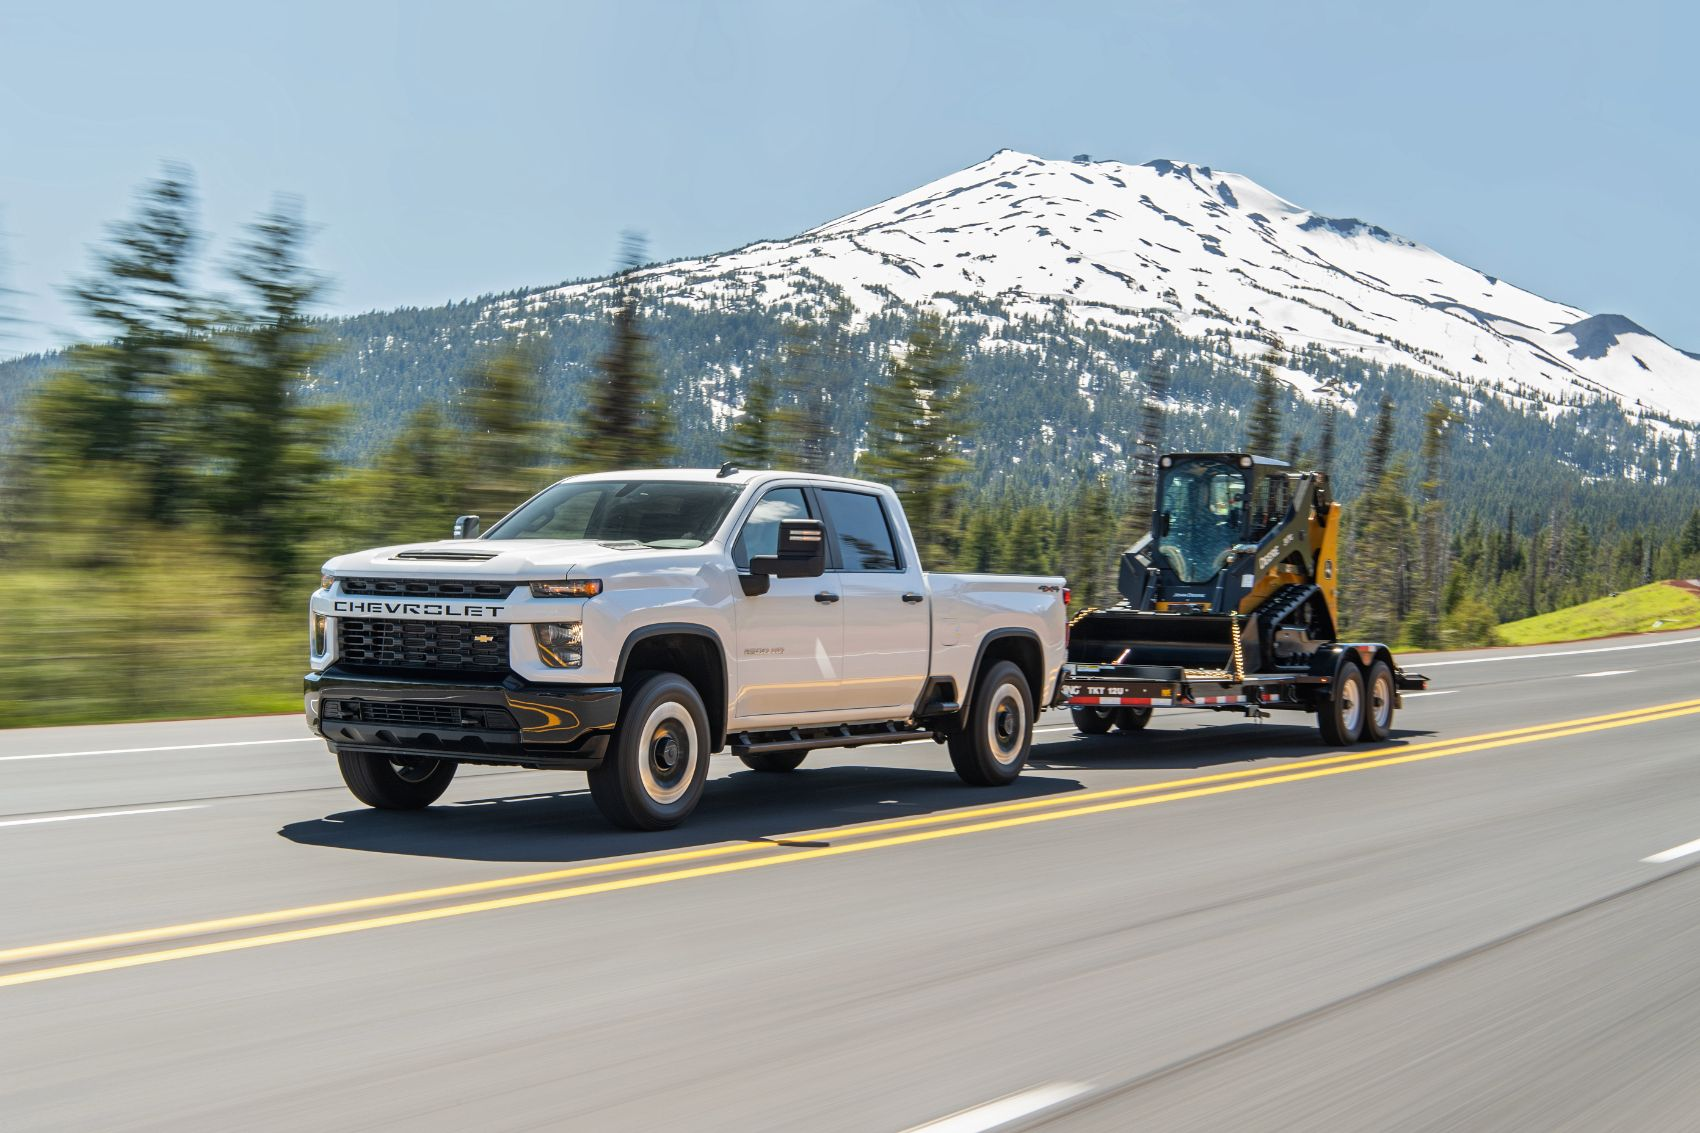 2021 Chevy Silverado HD: An Inside Look At This Lean, Mean Towing Machine